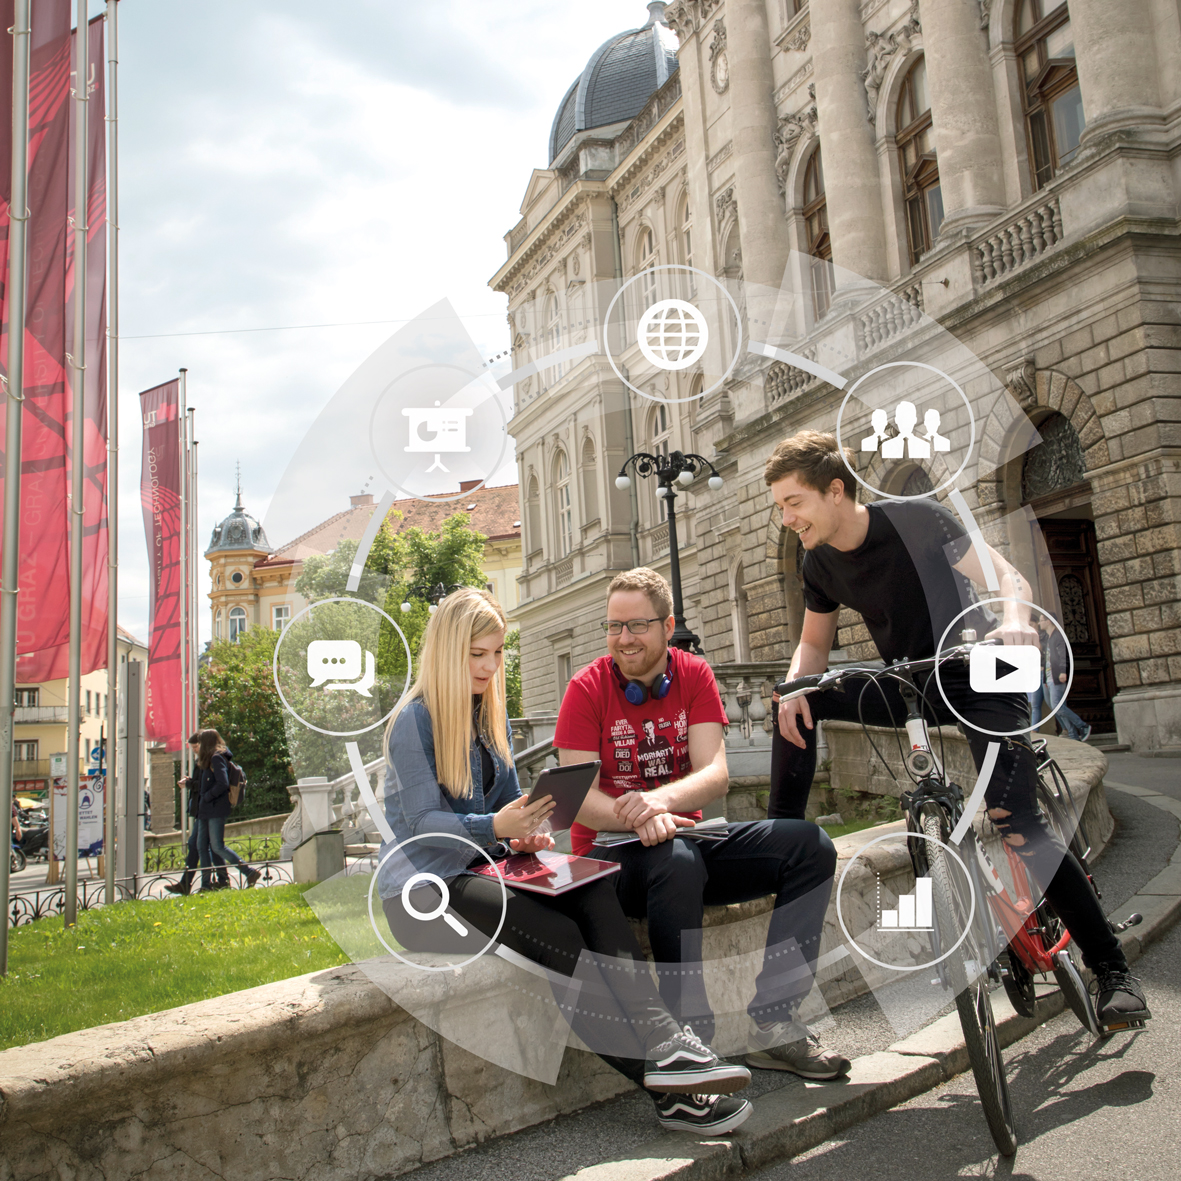 A young woman and a young man sit on a small wall in front of a large university building. A young man on a bicycle bends over to them. The woman is holding a tablet in her hand. Around the three people, various symbols are arranged in a circle, including a play button, a magnifying glass and speech bubbles.